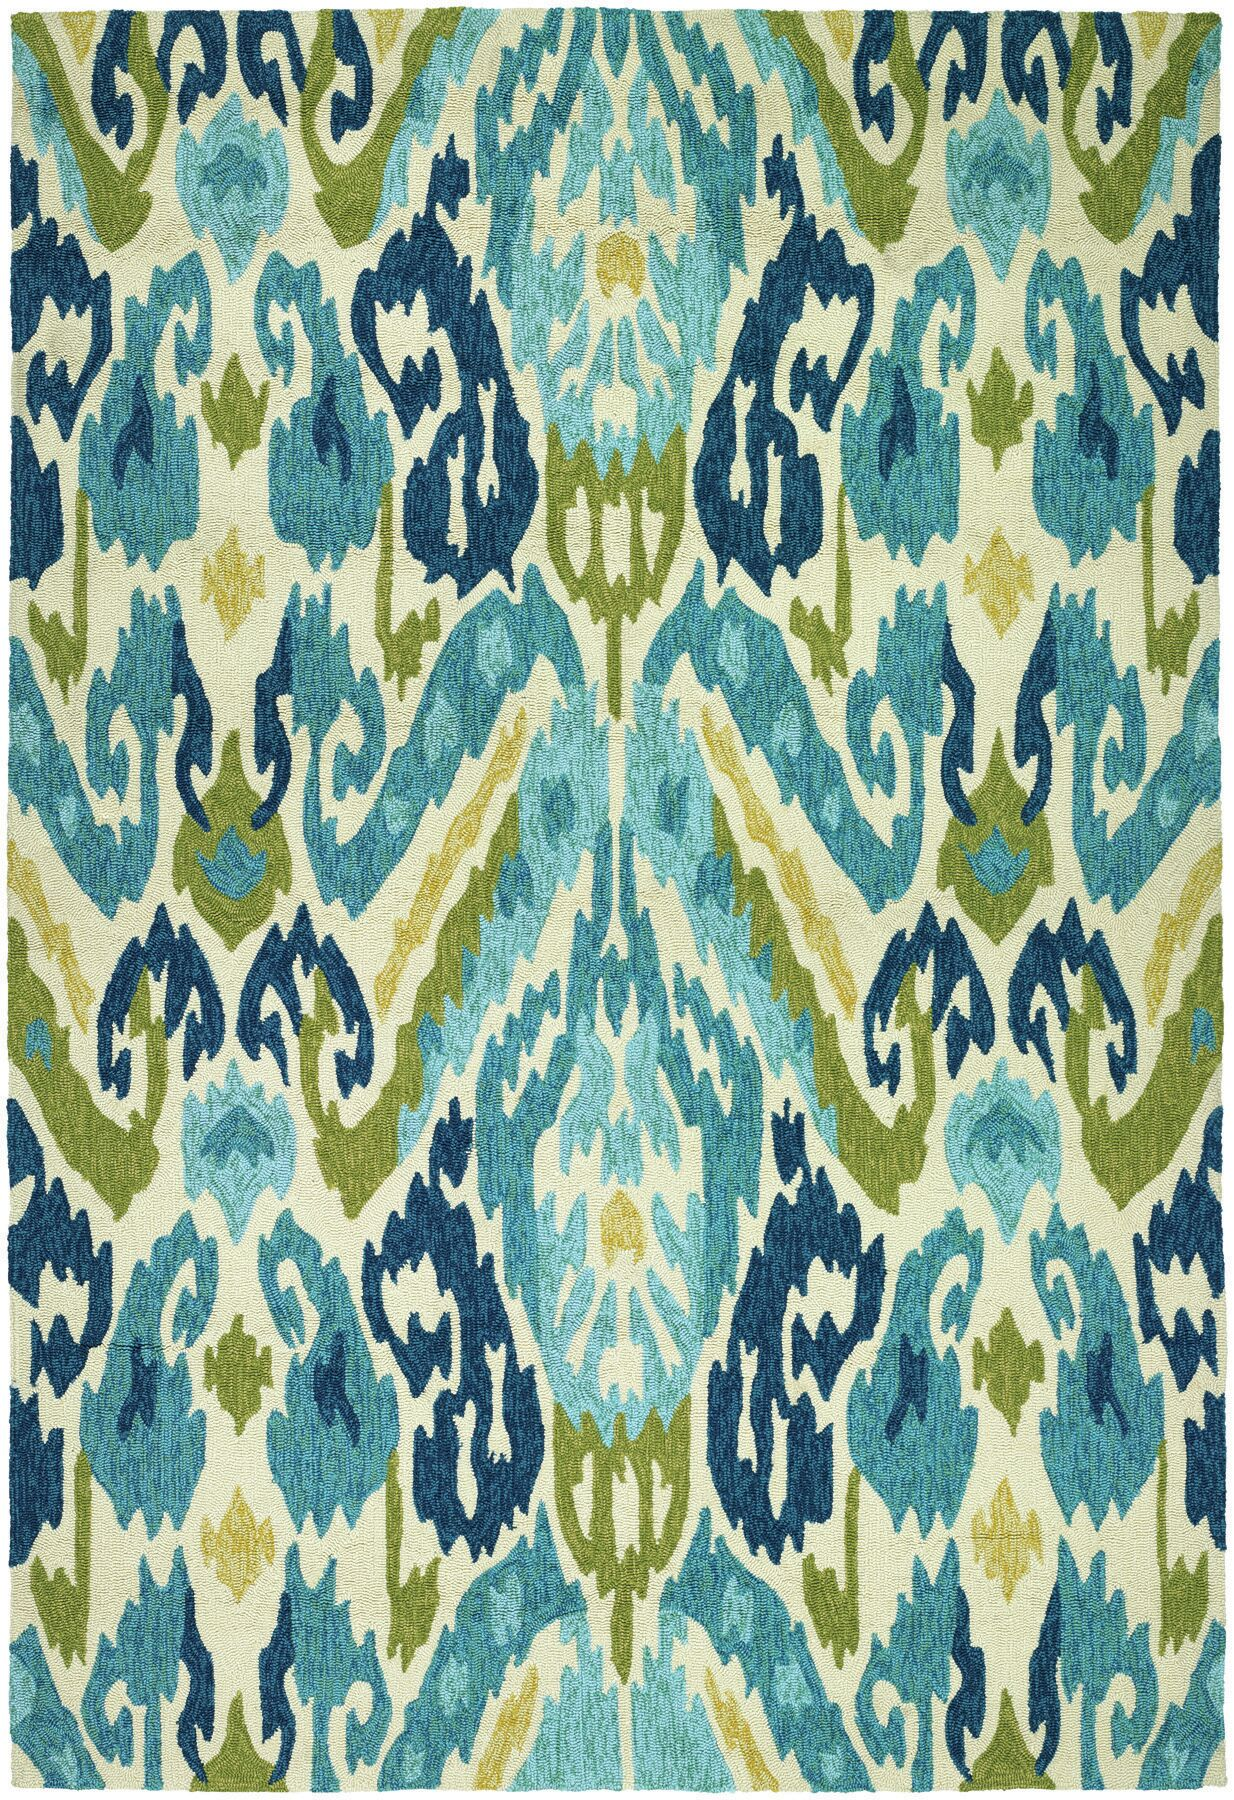 Mariann Hand-Woven Green/Blue Indoor/Outdoor Area Rug Rug Size: Rectangle 5'6